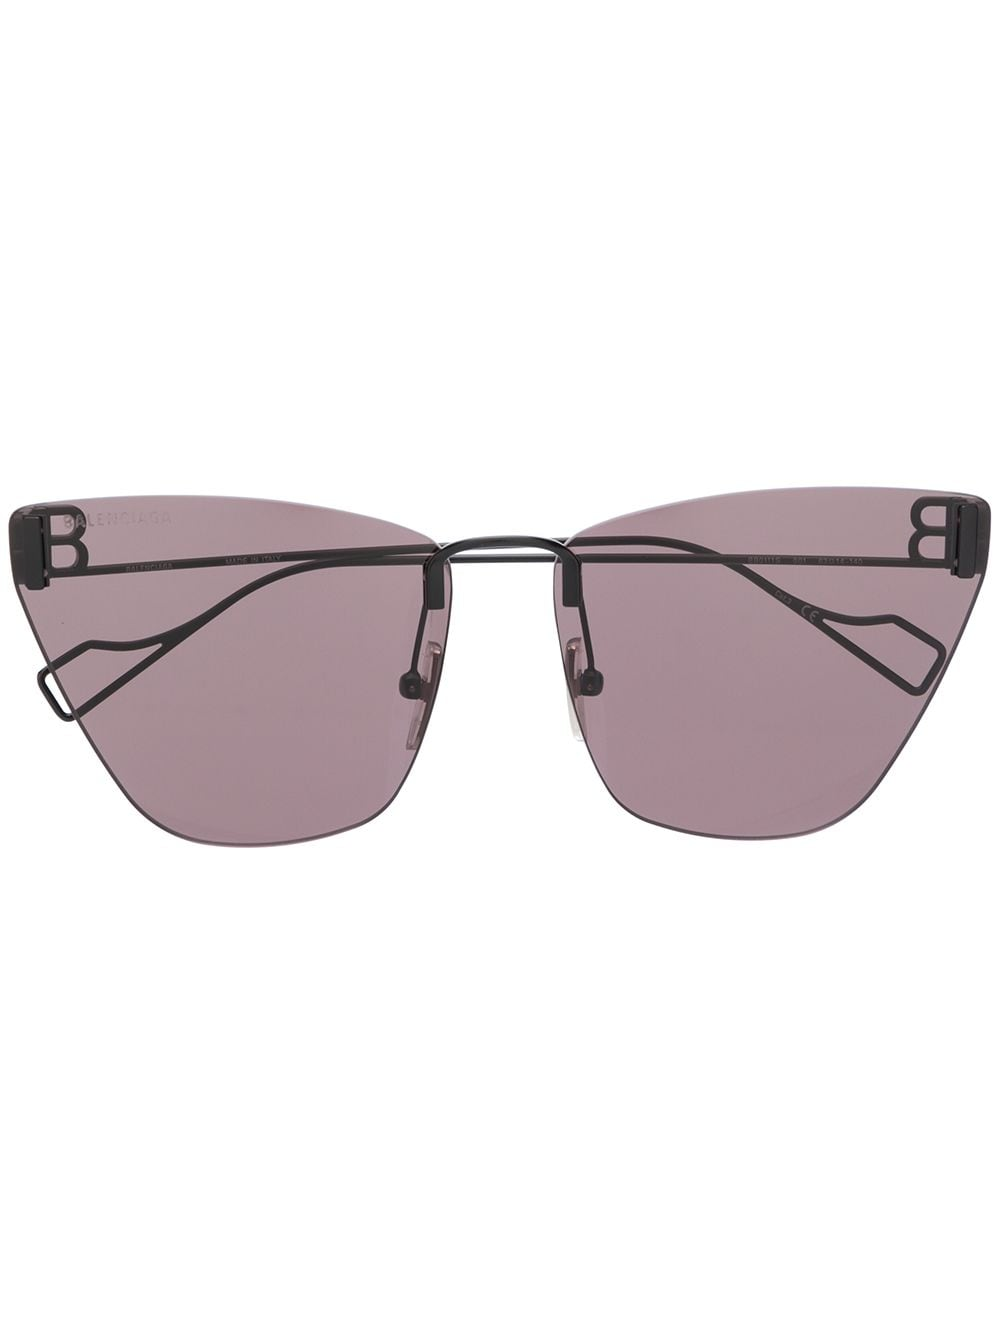 Light Cat Sunglasses